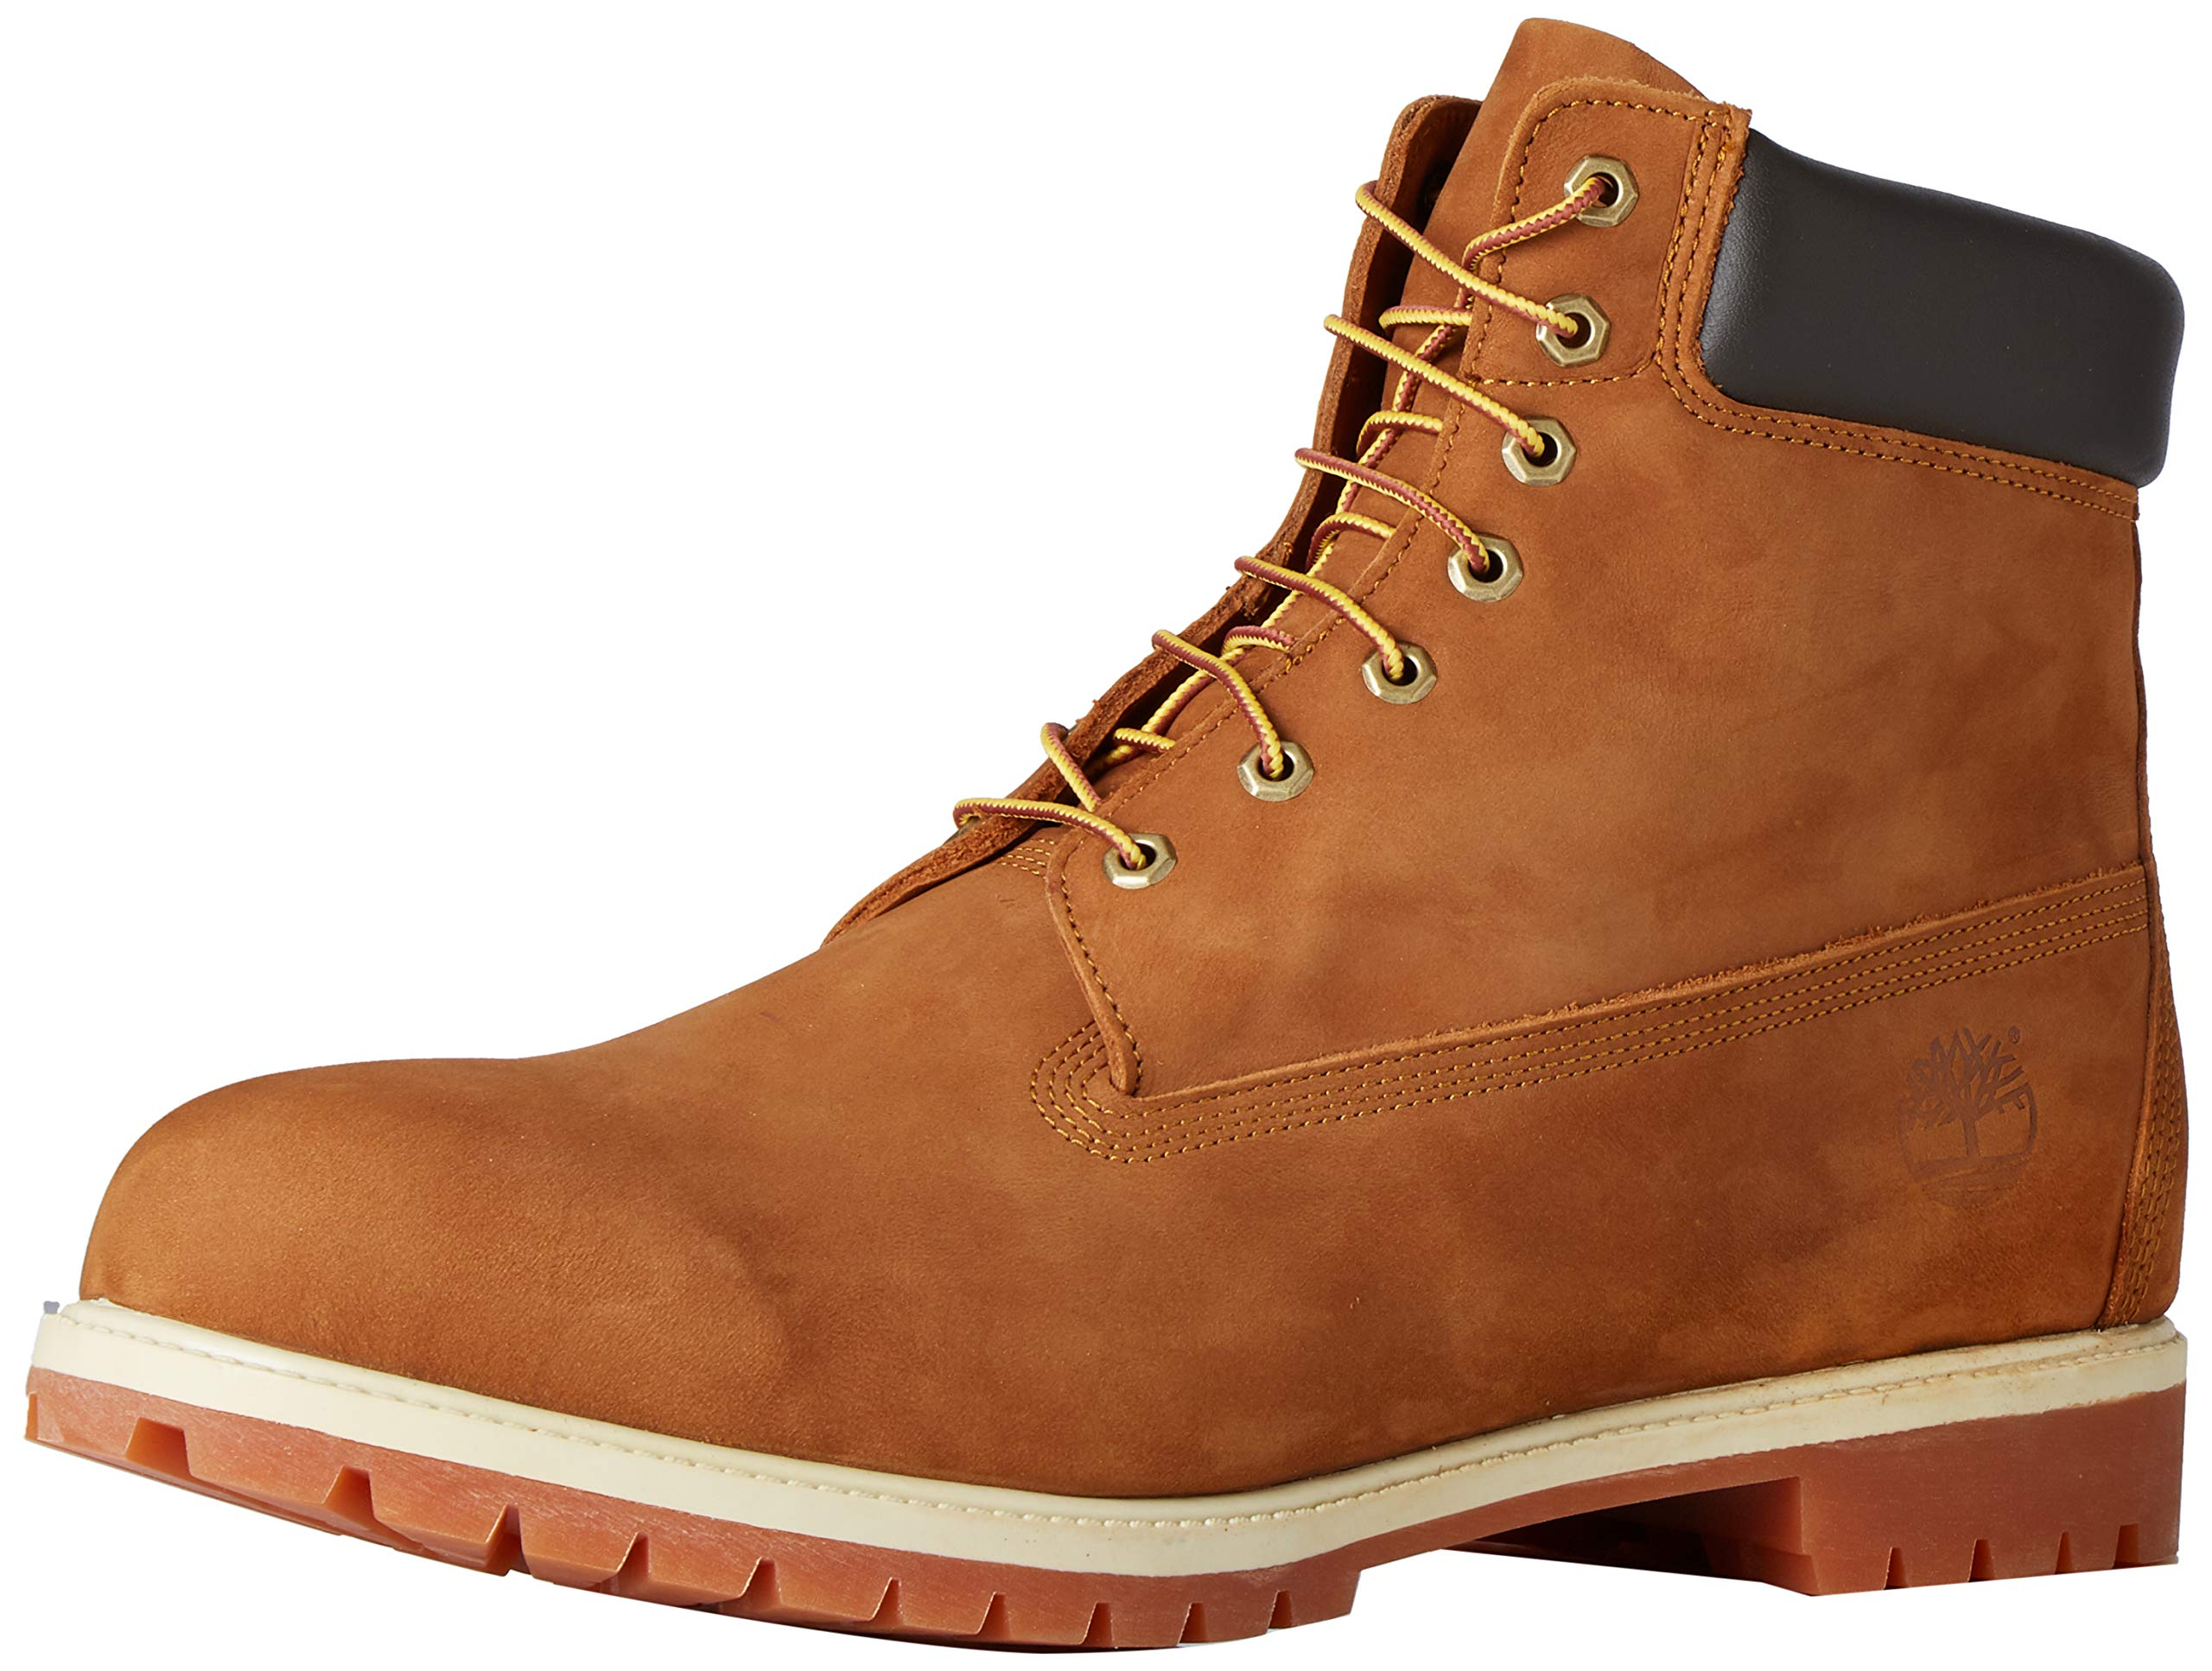 Timberland 6 in Premium Waterproof (Wide Fit) Stivali classici Uomo product  image 9e43d3d0eb6